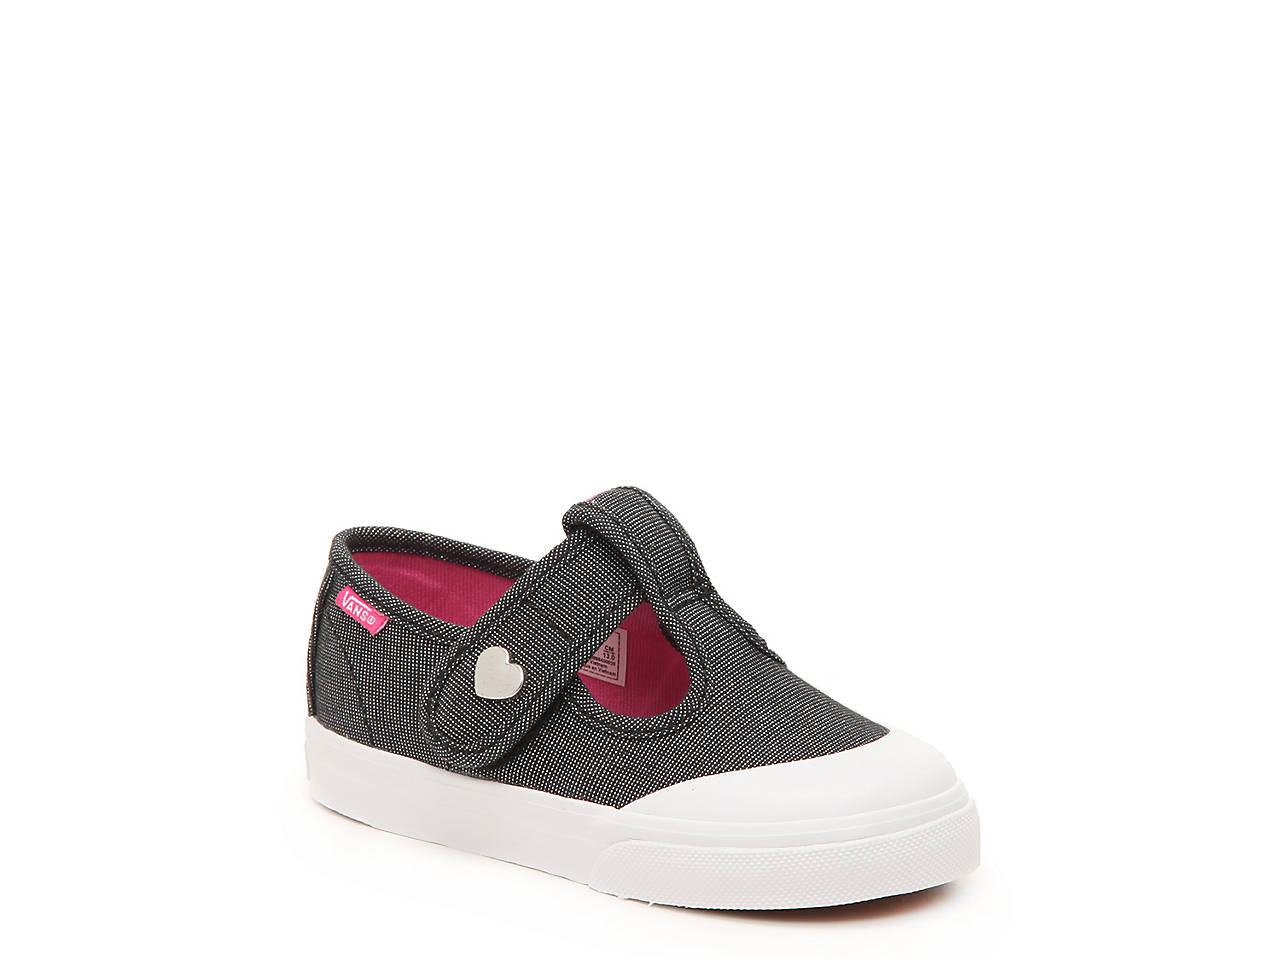 adcca5fab18e08 Vans Lenna Infant   Toddler Mary Jane Sneaker Kids Shoes